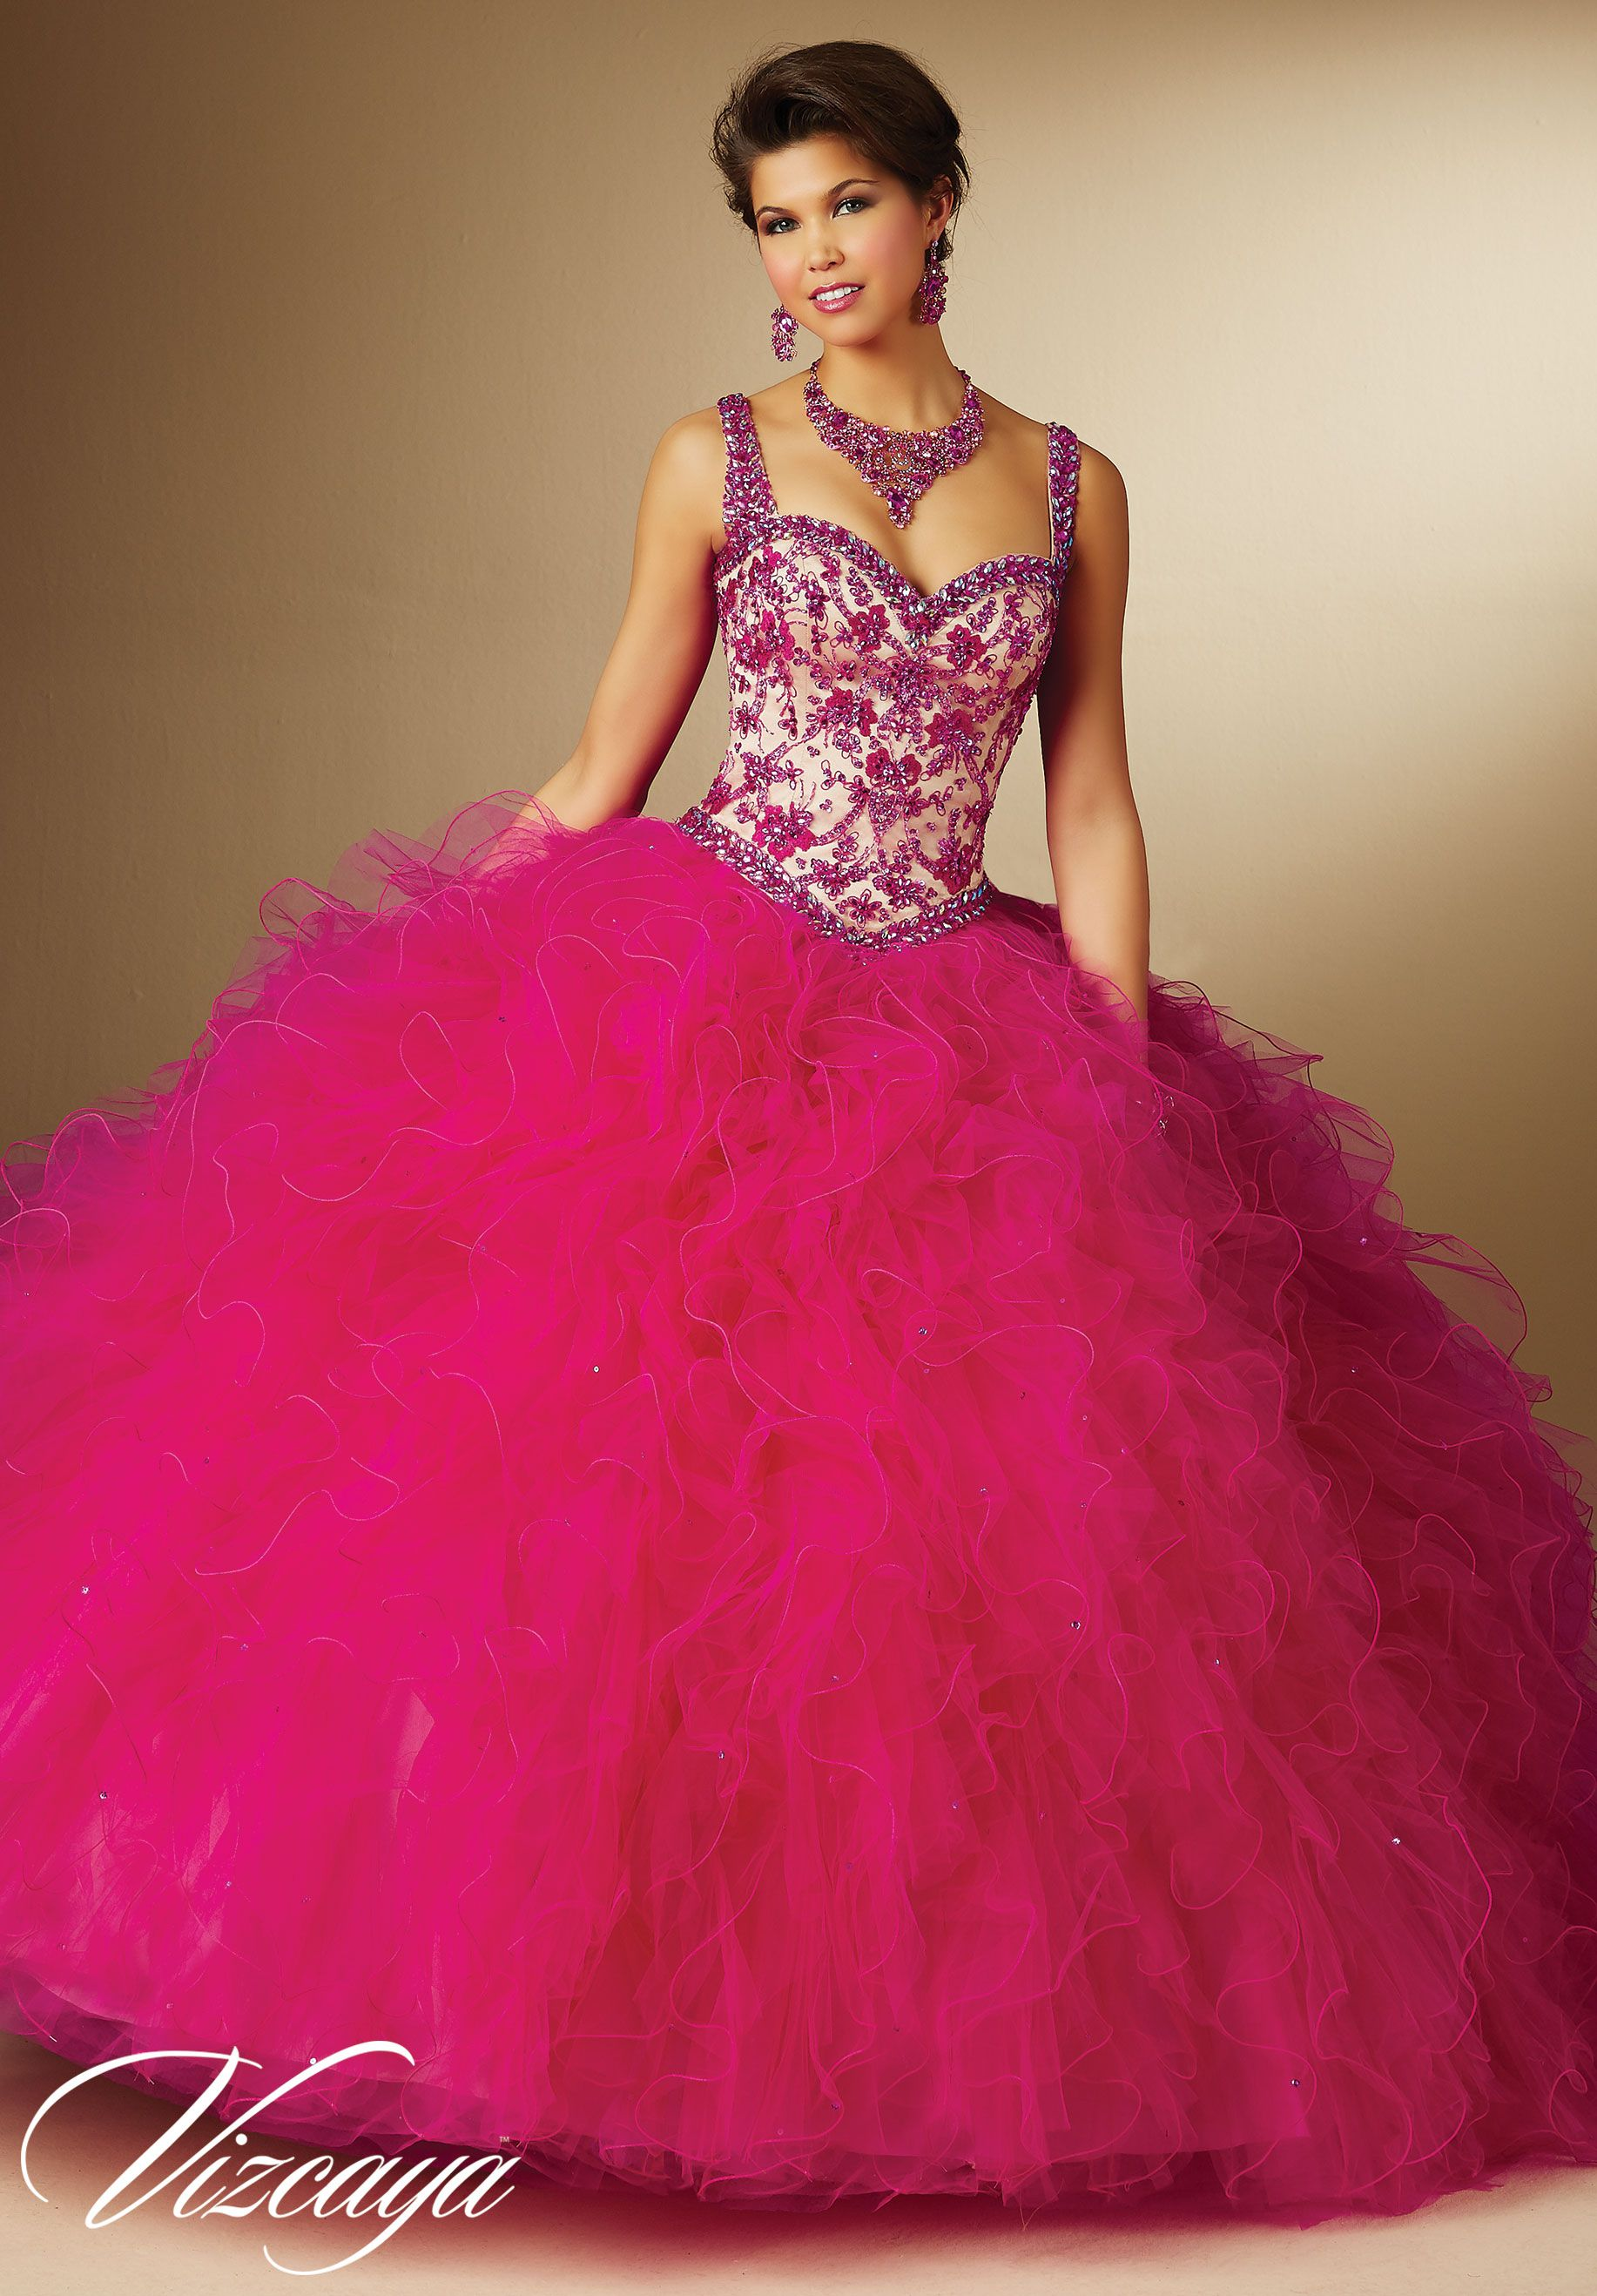 Pink Contrasting Embroidery Beading Ruffled Skirt Quinceanera Dress Vizcaya By Morilee Ma Pretty Girl Dresses Quincenera Dresses Mori Lee Quinceanera Dresses [ 2636 x 1834 Pixel ]